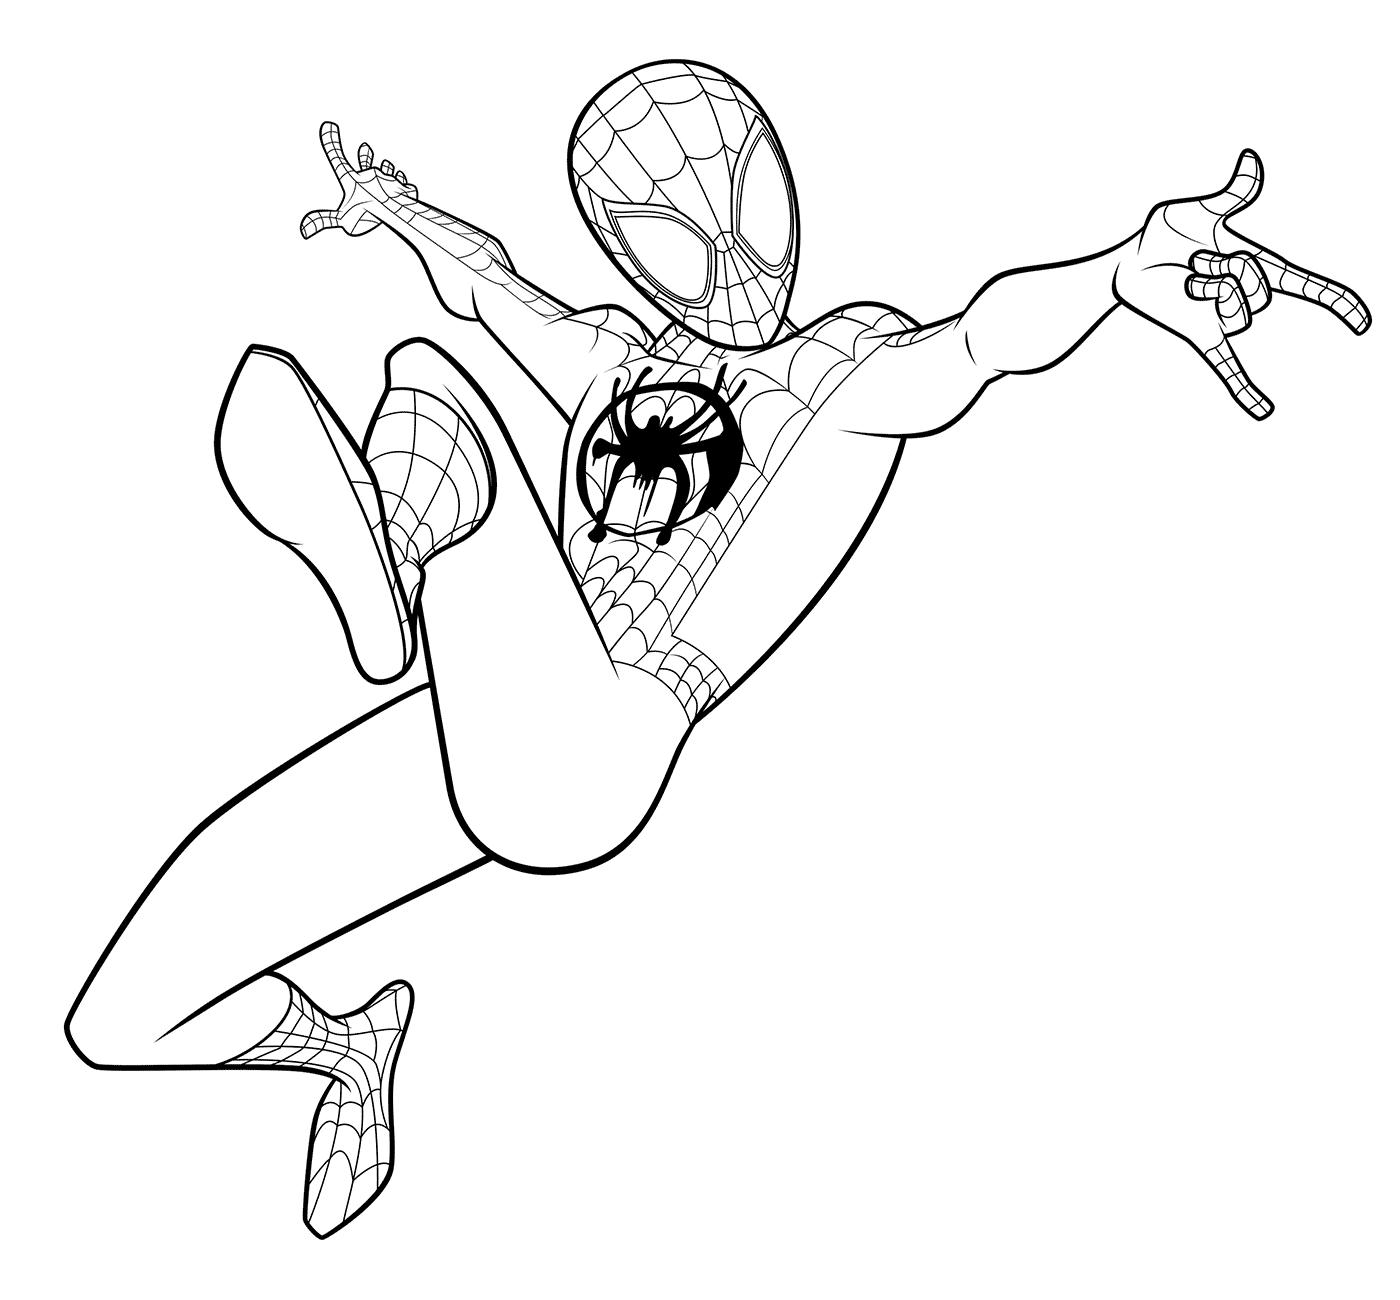 miles morales spiderman coloring page miles morales coloring pages free printable coloring pages spiderman morales coloring miles page